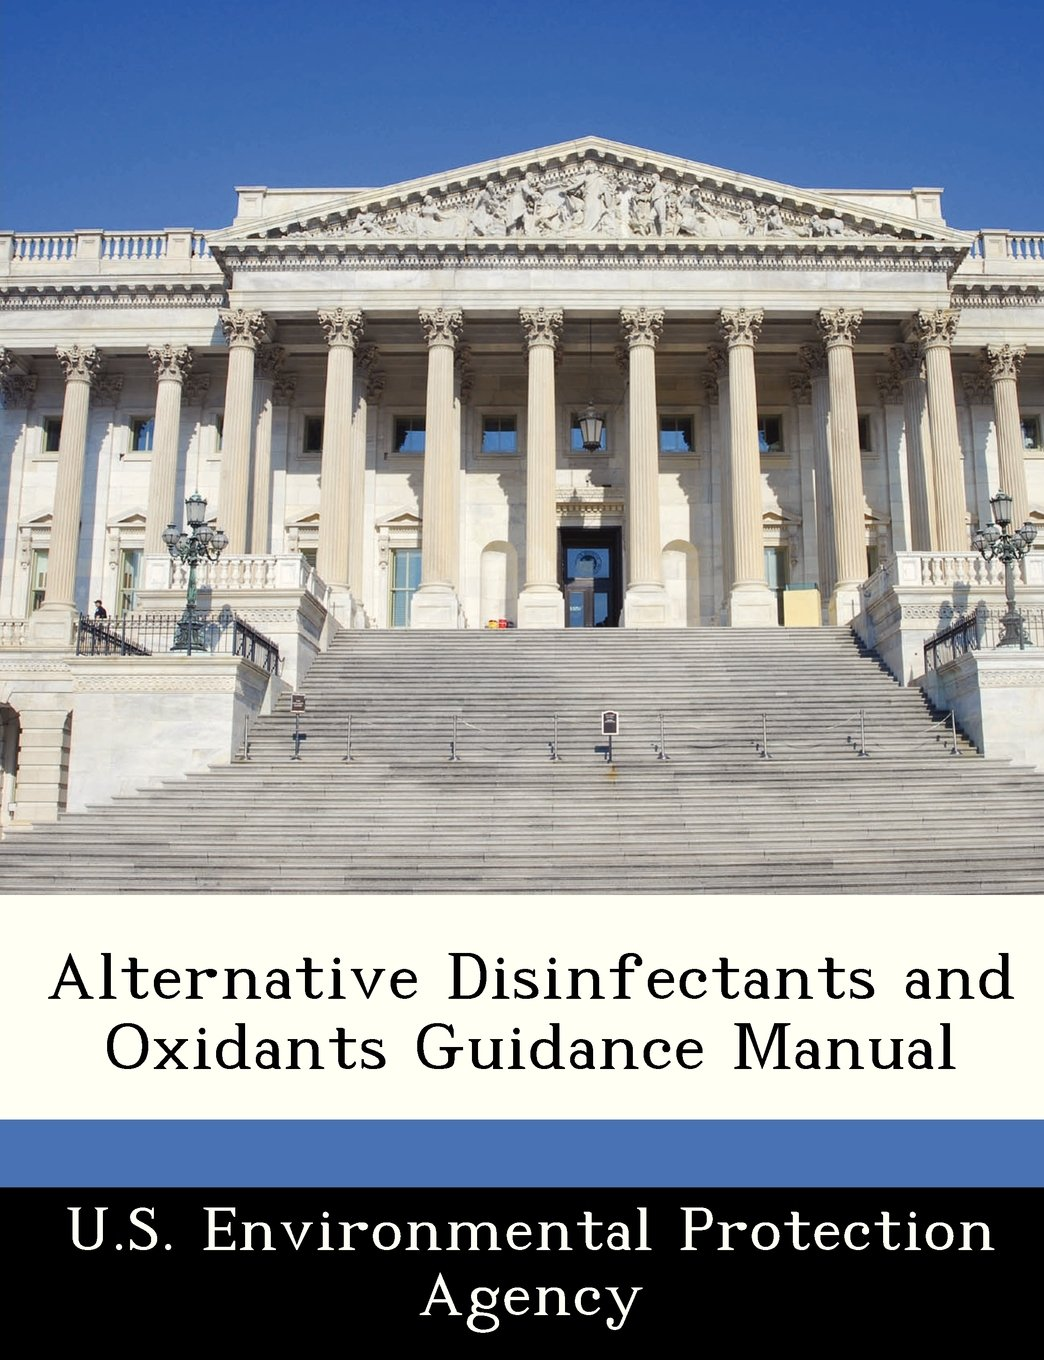 Alternative Disinfectants and Oxidants Guidance Manual pdf